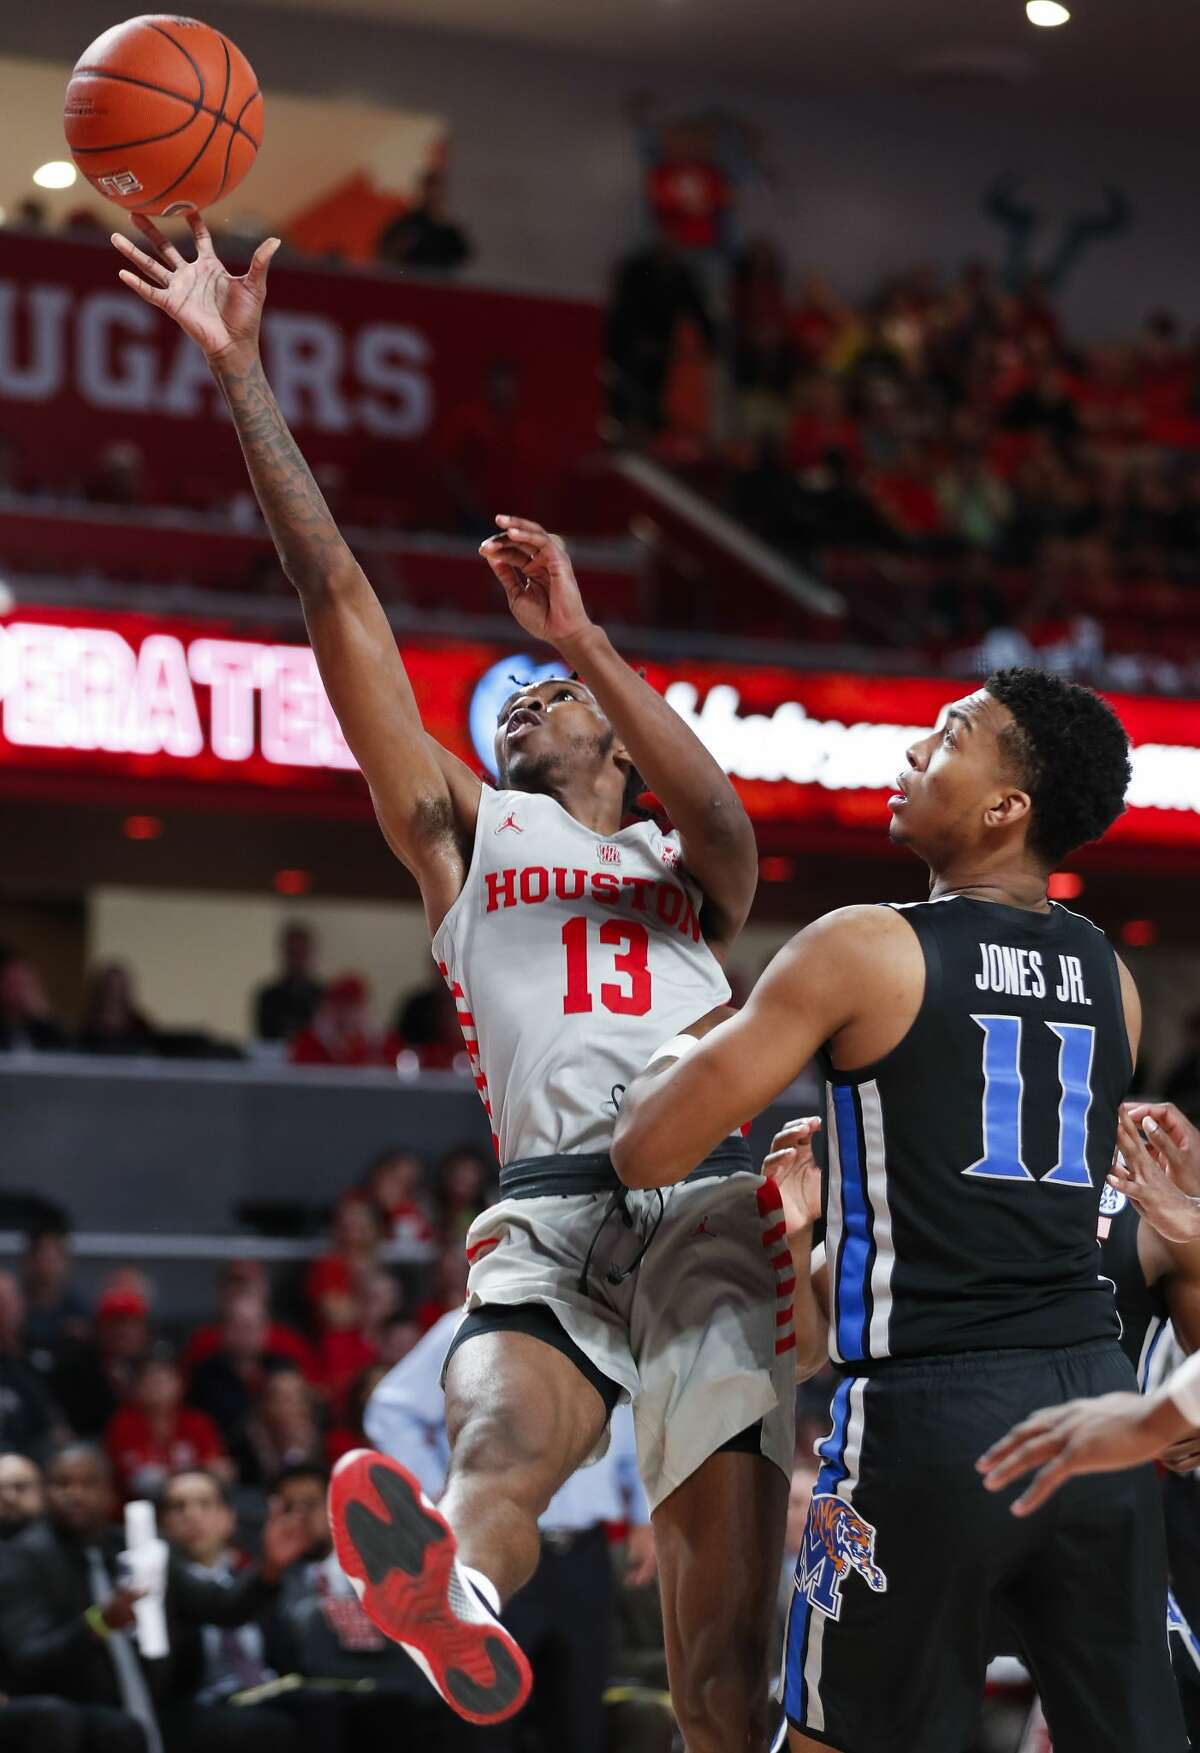 Houston guard Dejon Jarreau (13) takes a shot against Memphis guard Antwann Jones (11) during the second half on a NCAA basketball game at Fertitta Center on Sunday, Jan. 6, 2019, in Houston.